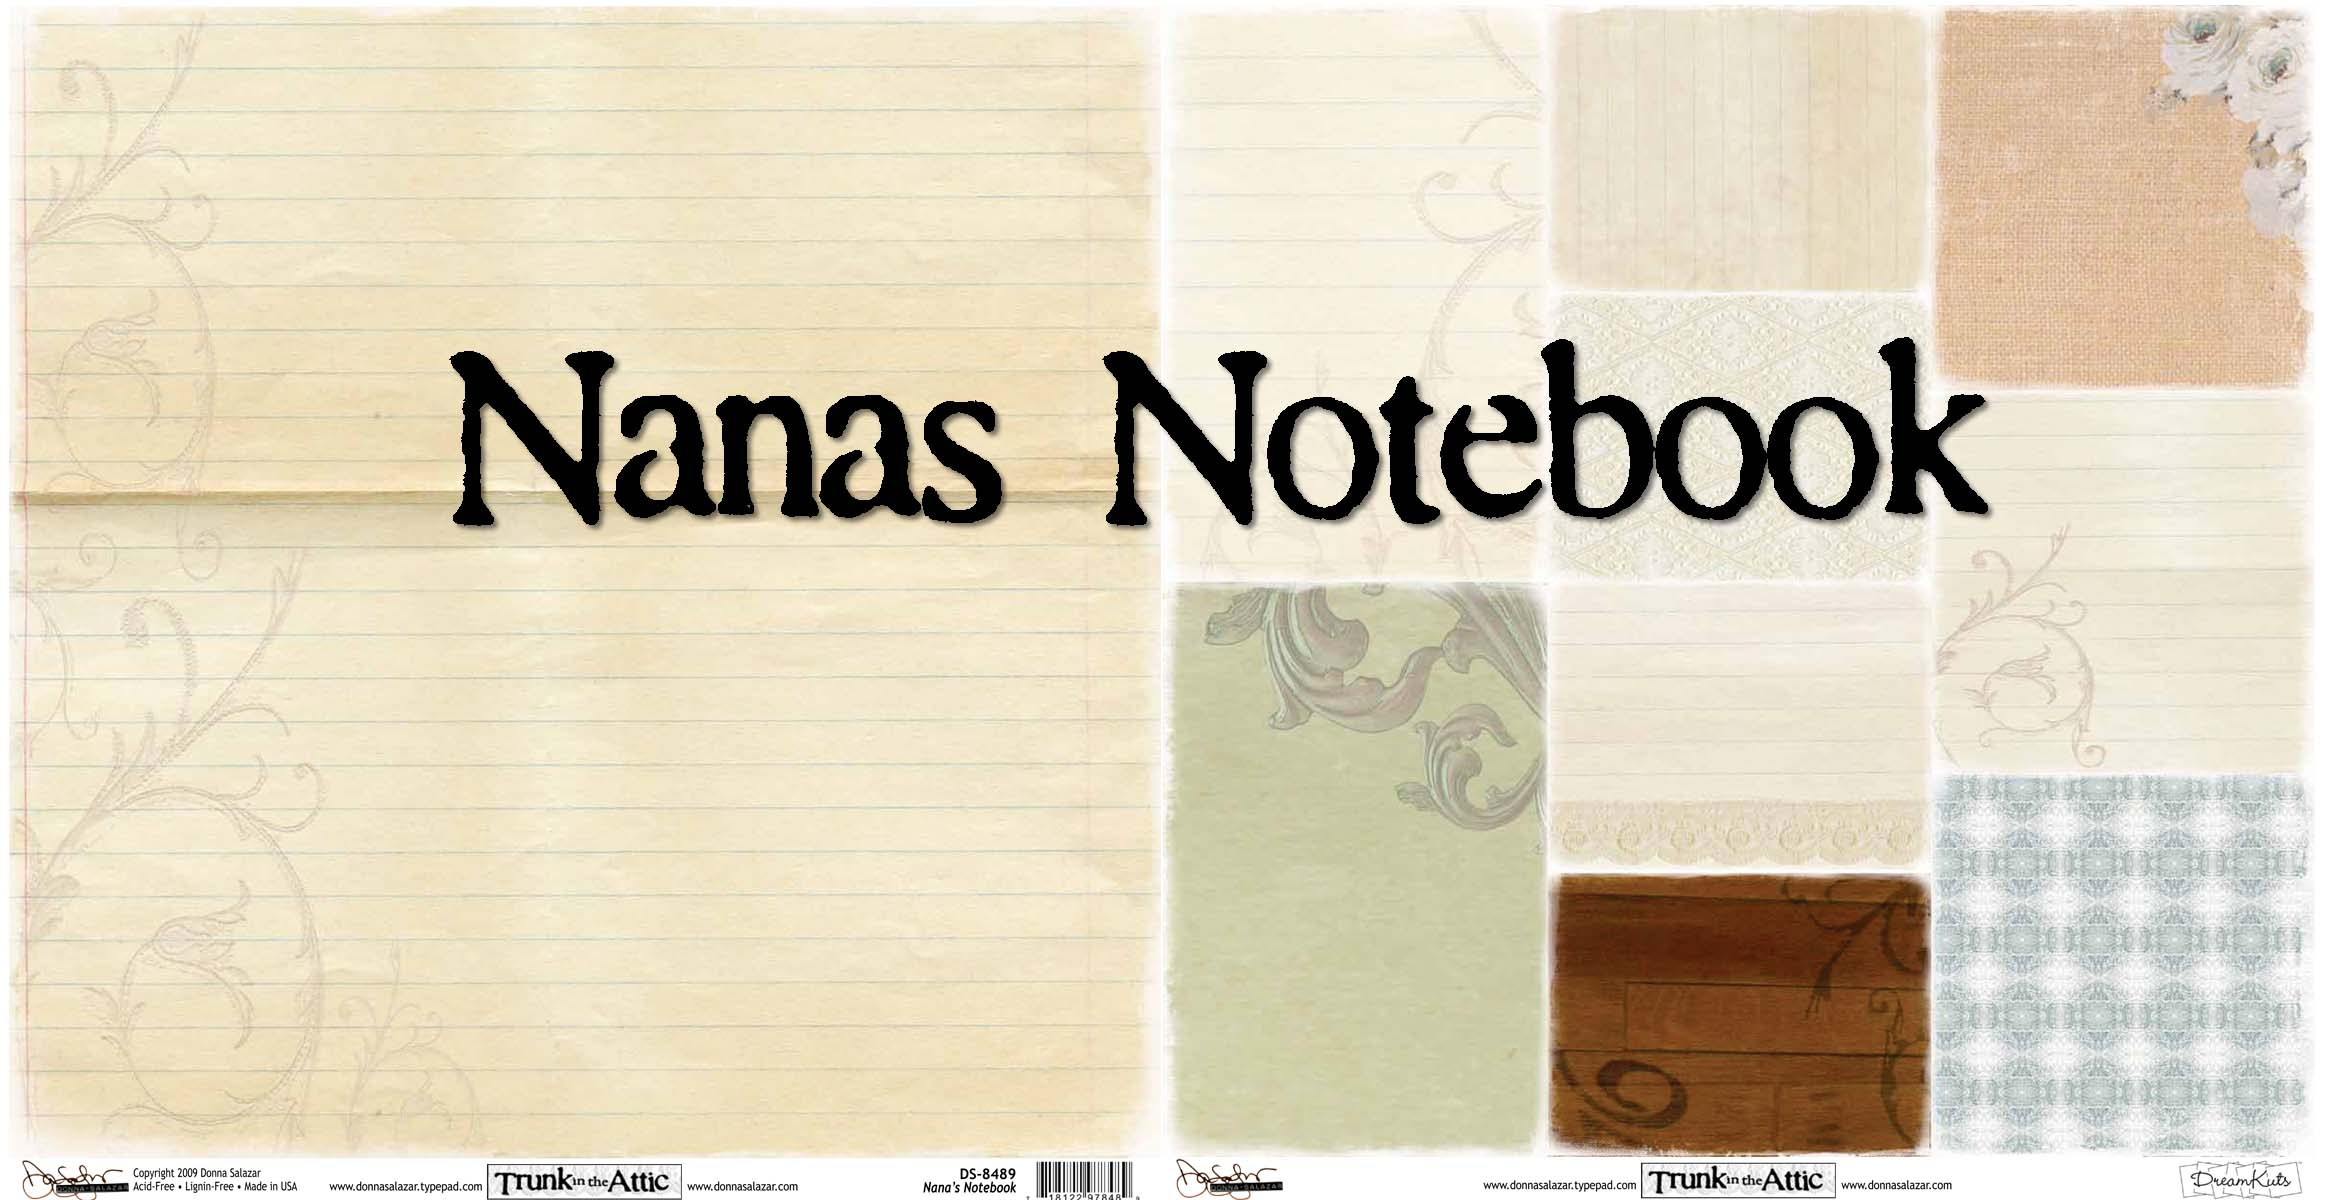 Nanas notebook